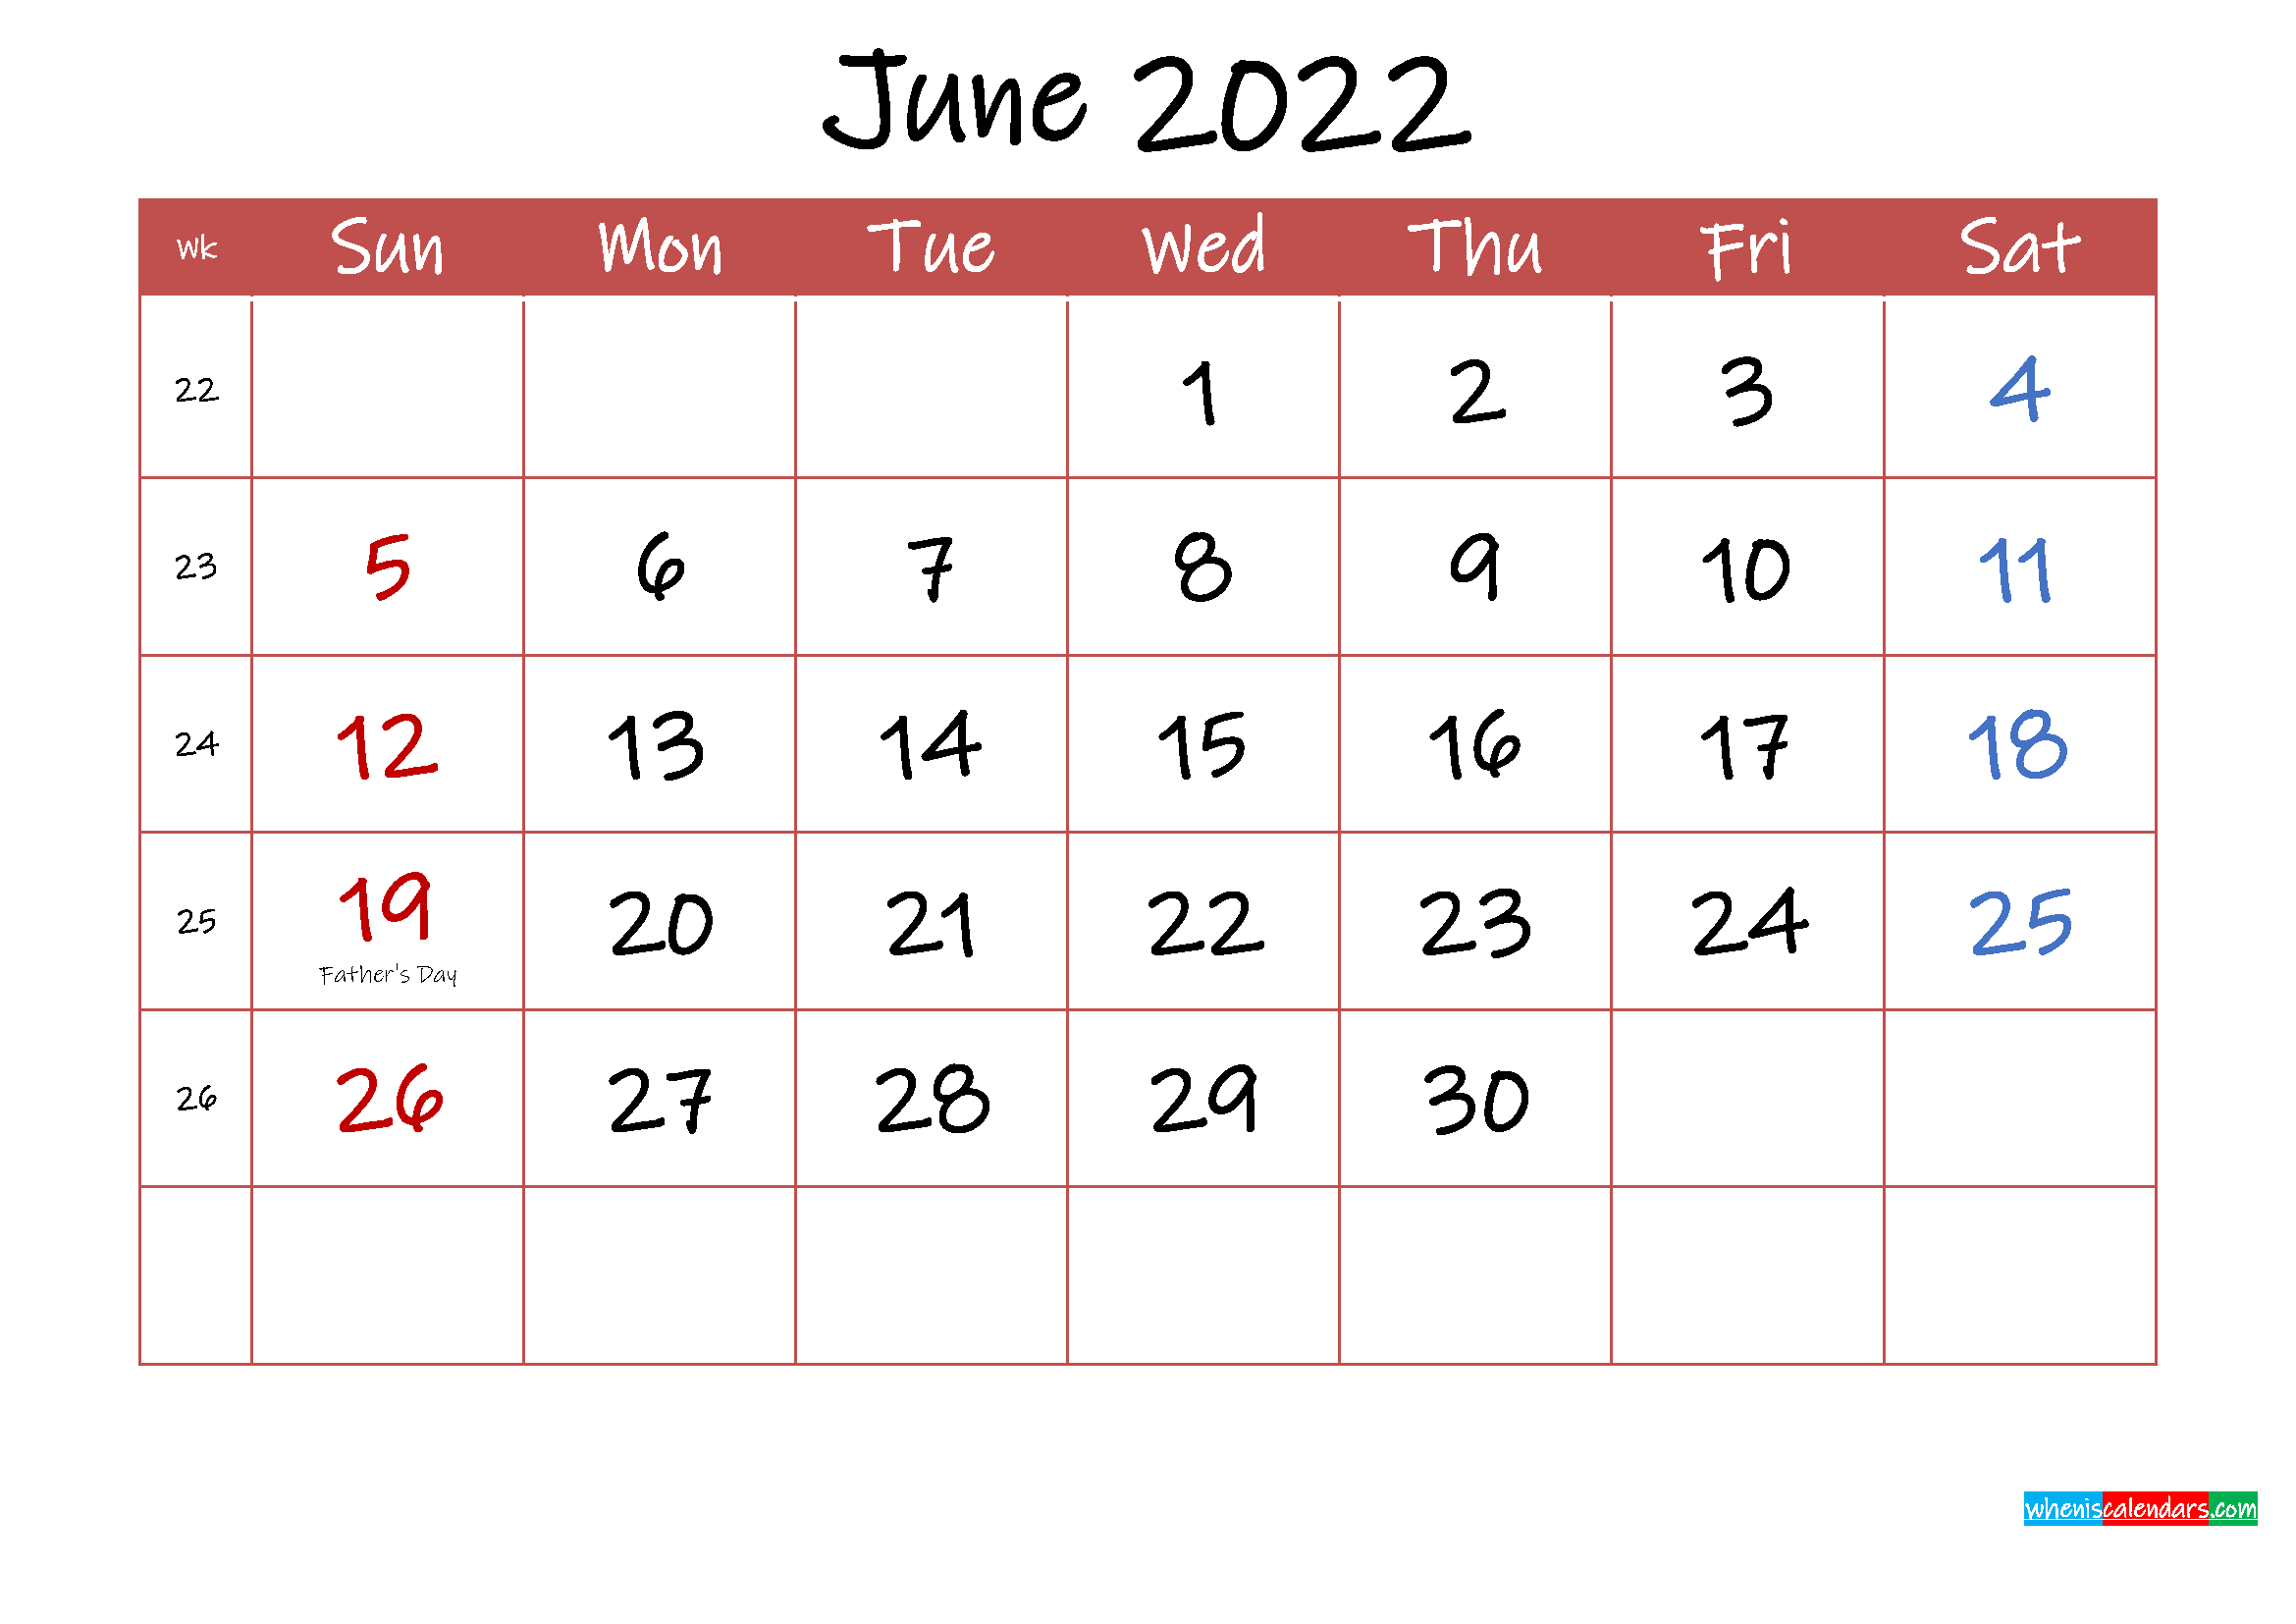 Printable June 2022 Calendar with Holidays - Template ink22m30